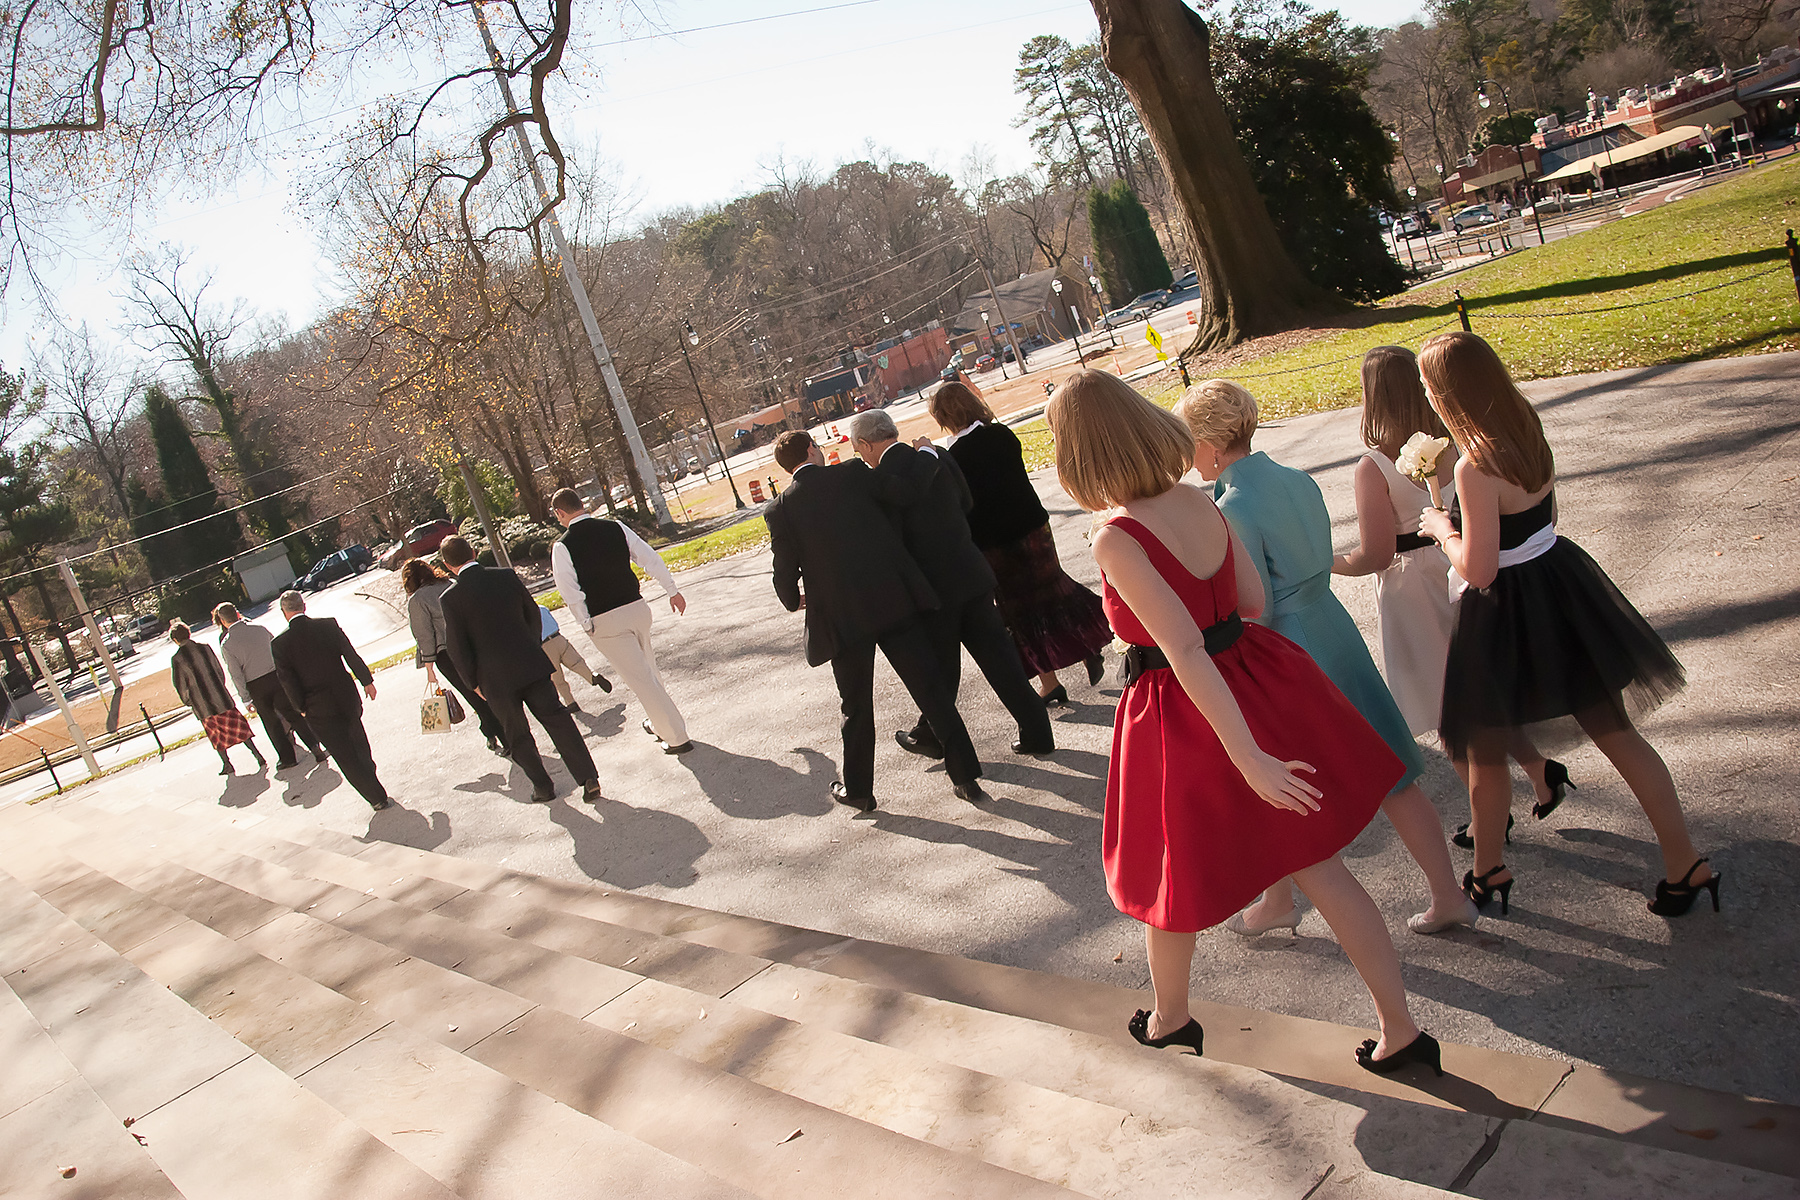 Outdoor Wedding Pic from Glenn Memorial UMC | Walking to the church on a bright, sunny day